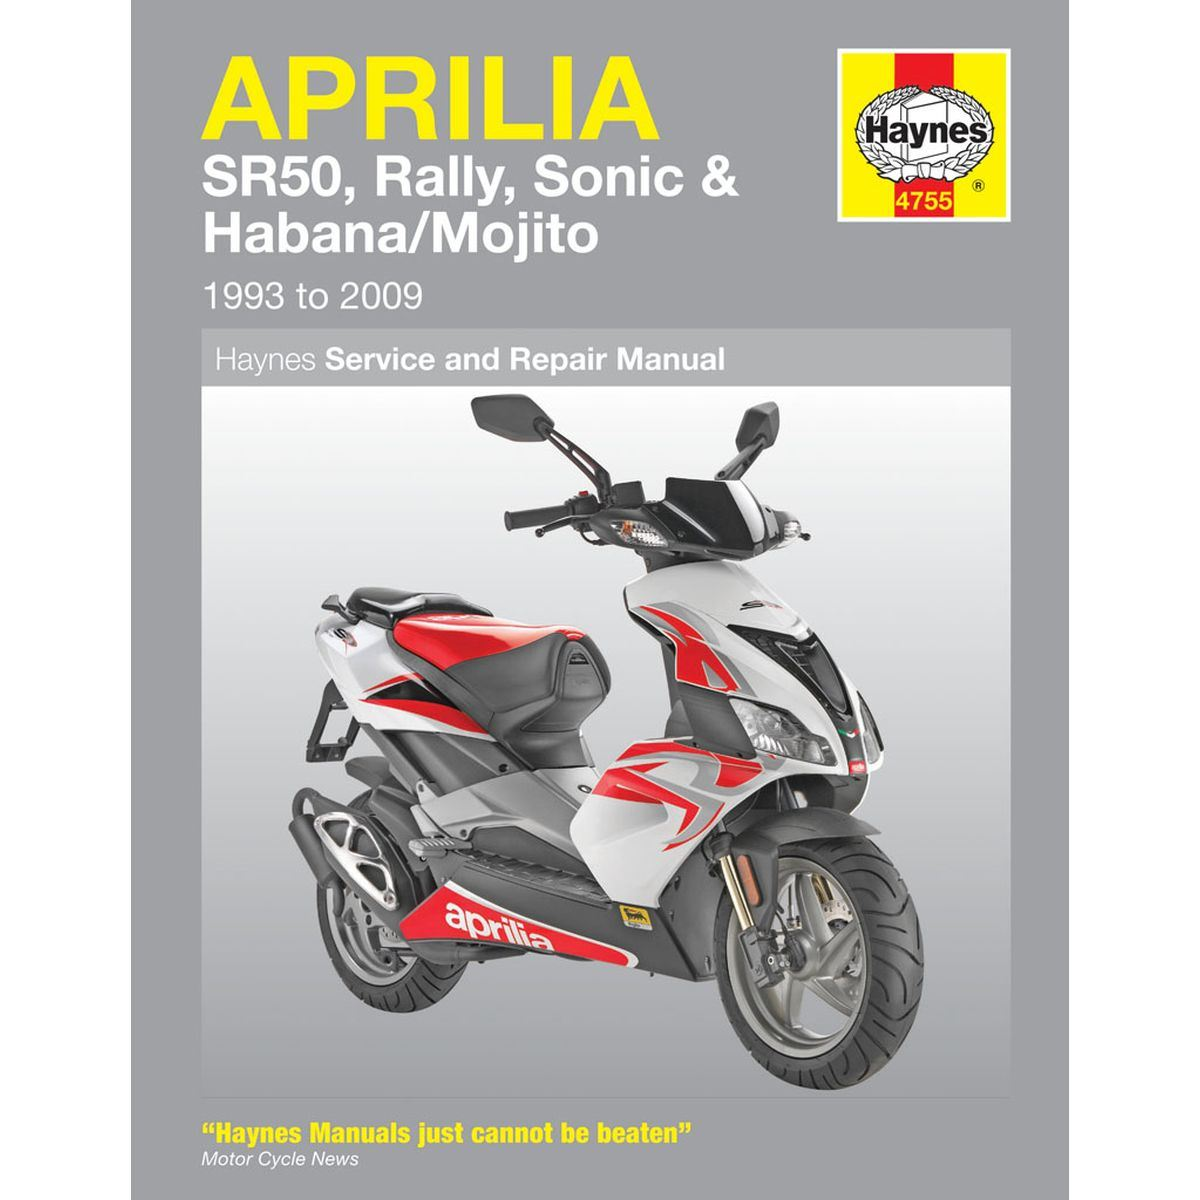 Manual Haynes for 2002 Aprilia Habana Retro 50